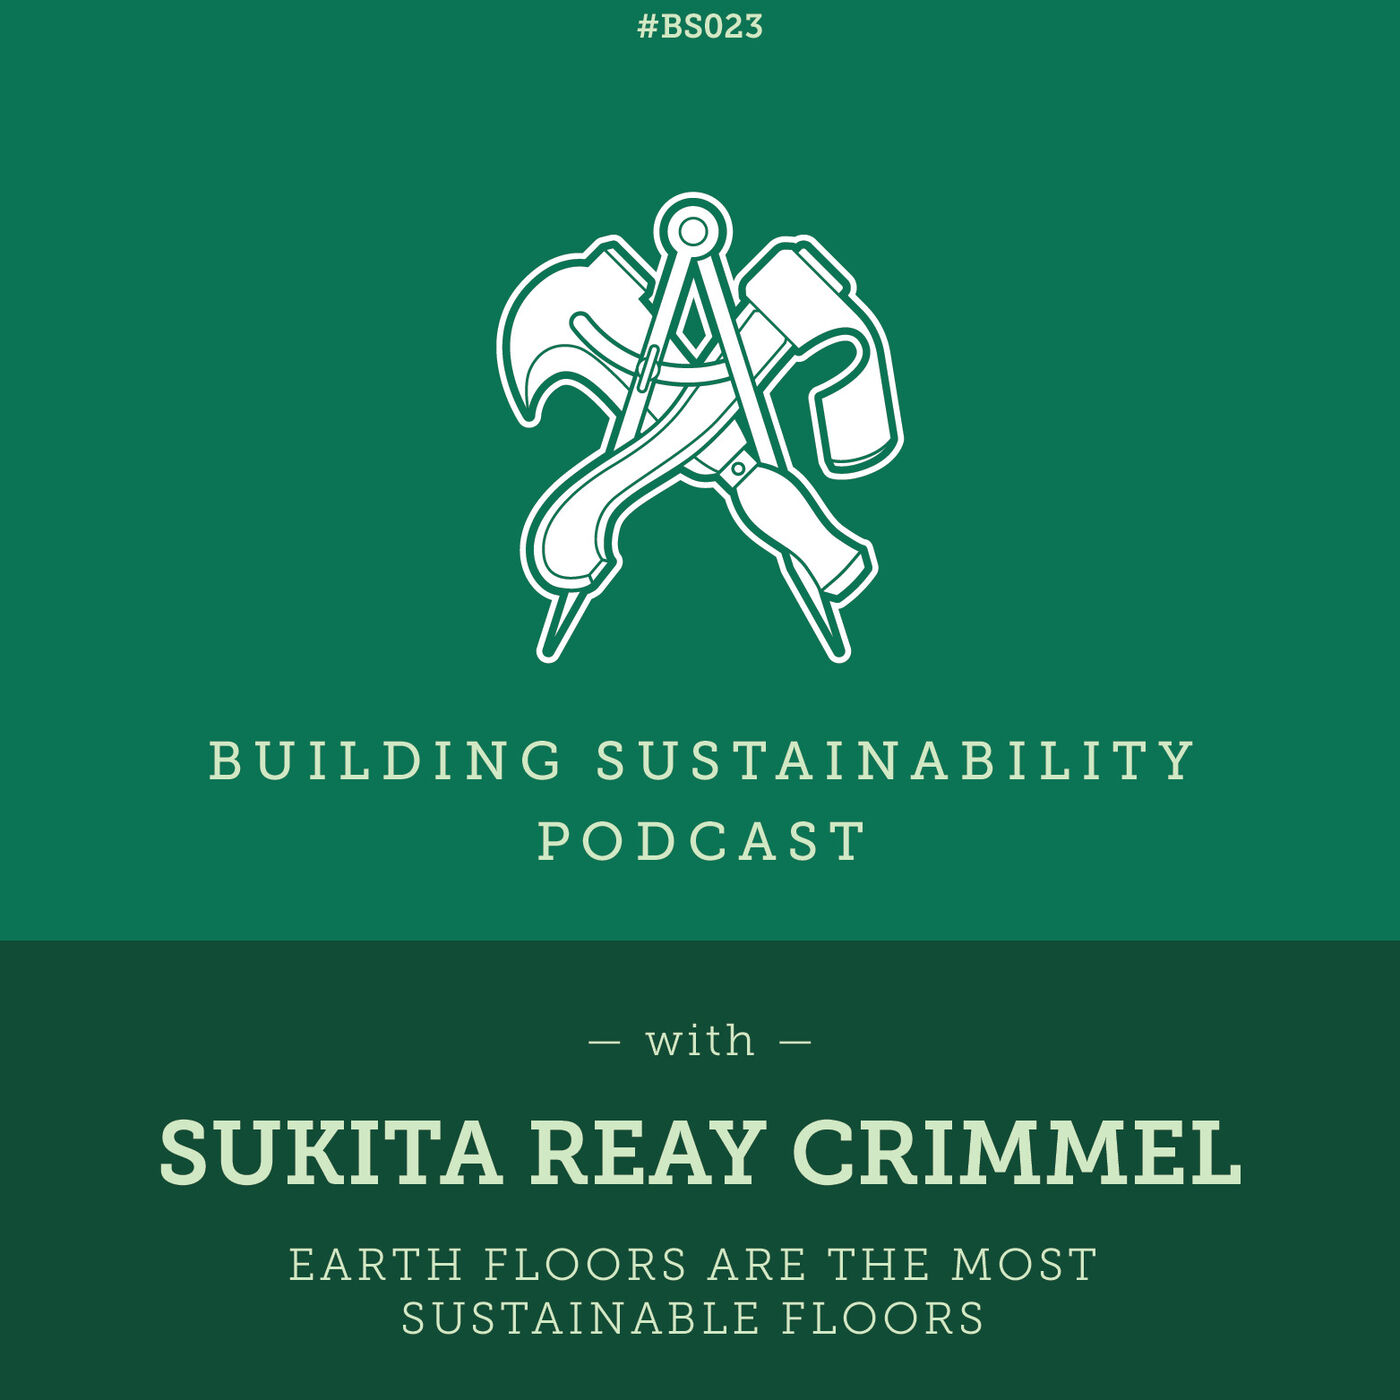 Earth floors are the most sustainable floors - Sukita Reay Crimmel - BS023